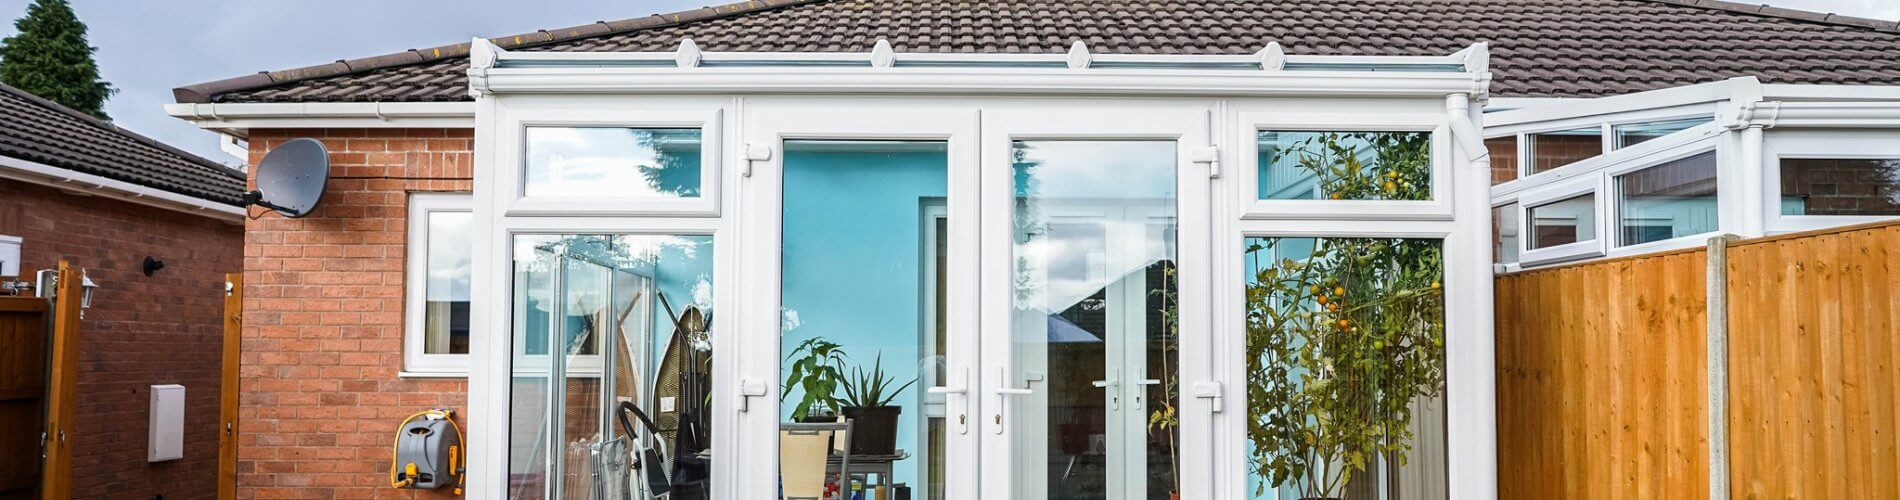 How to choose the best conservatory company near you?